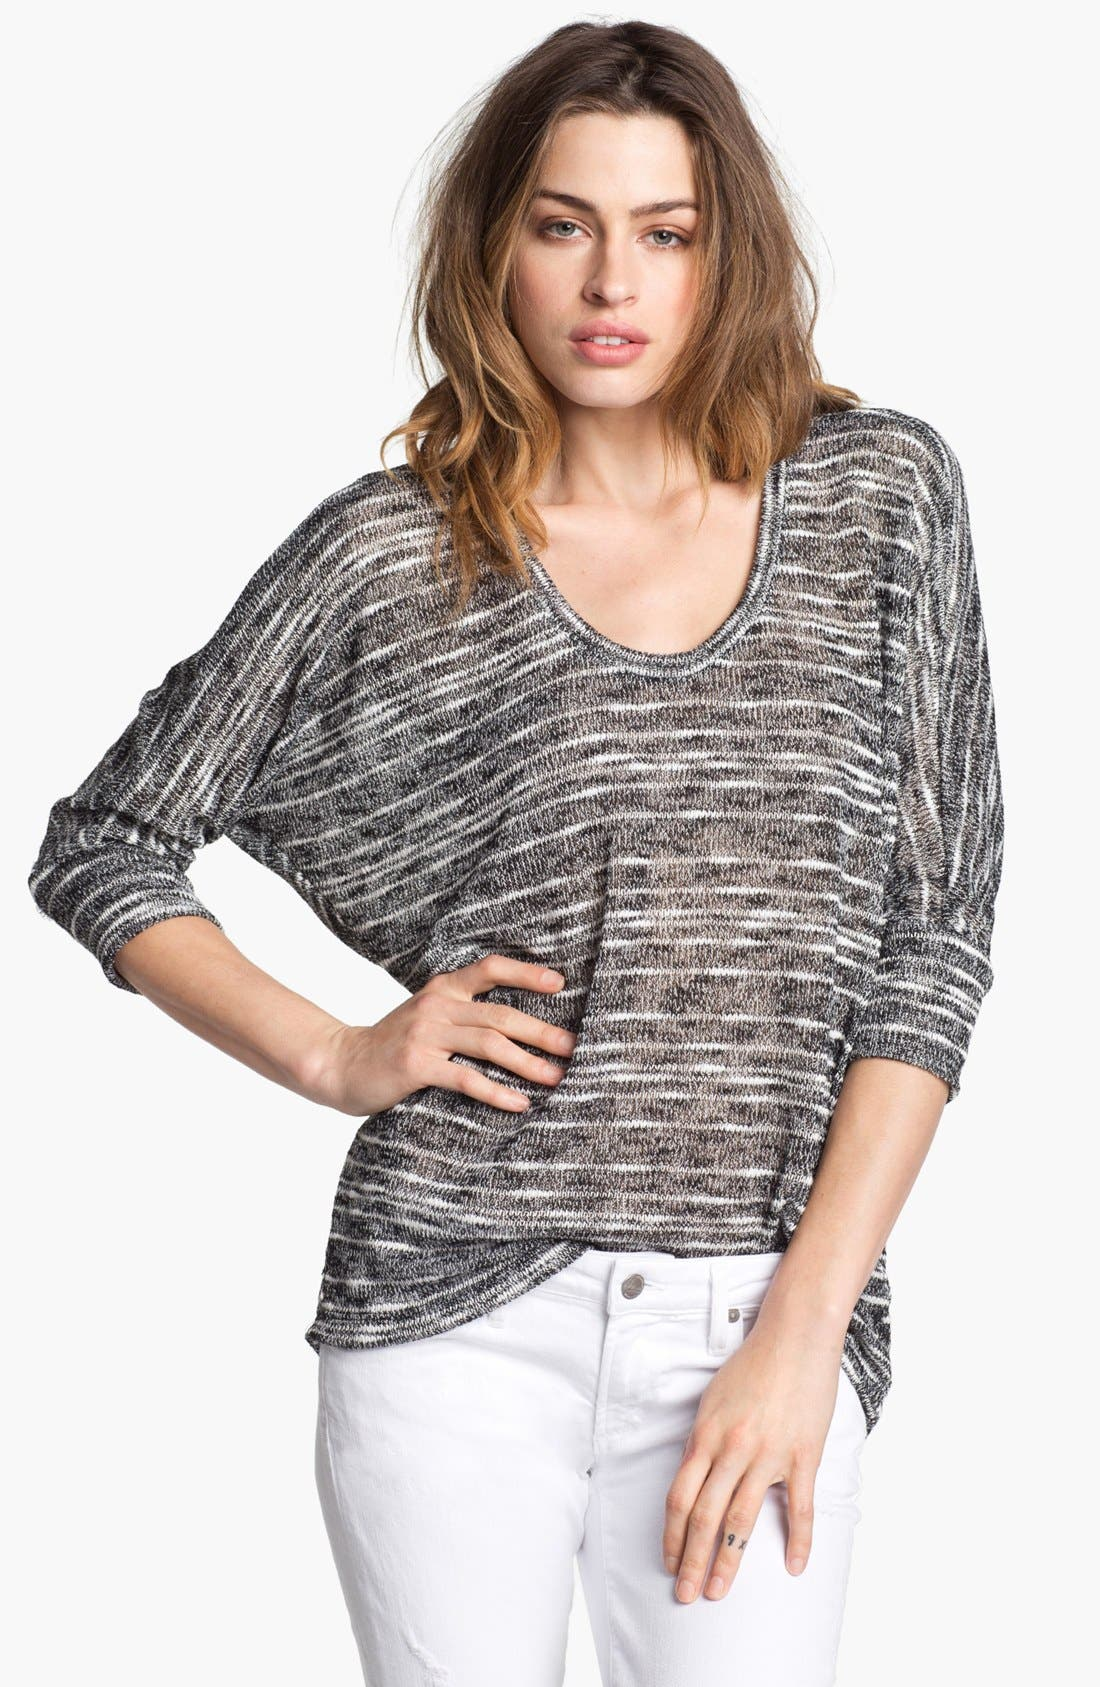 Alternate Image 1 Selected - Splendid 'Norwegian' Slub Stripe Dolman Sweater